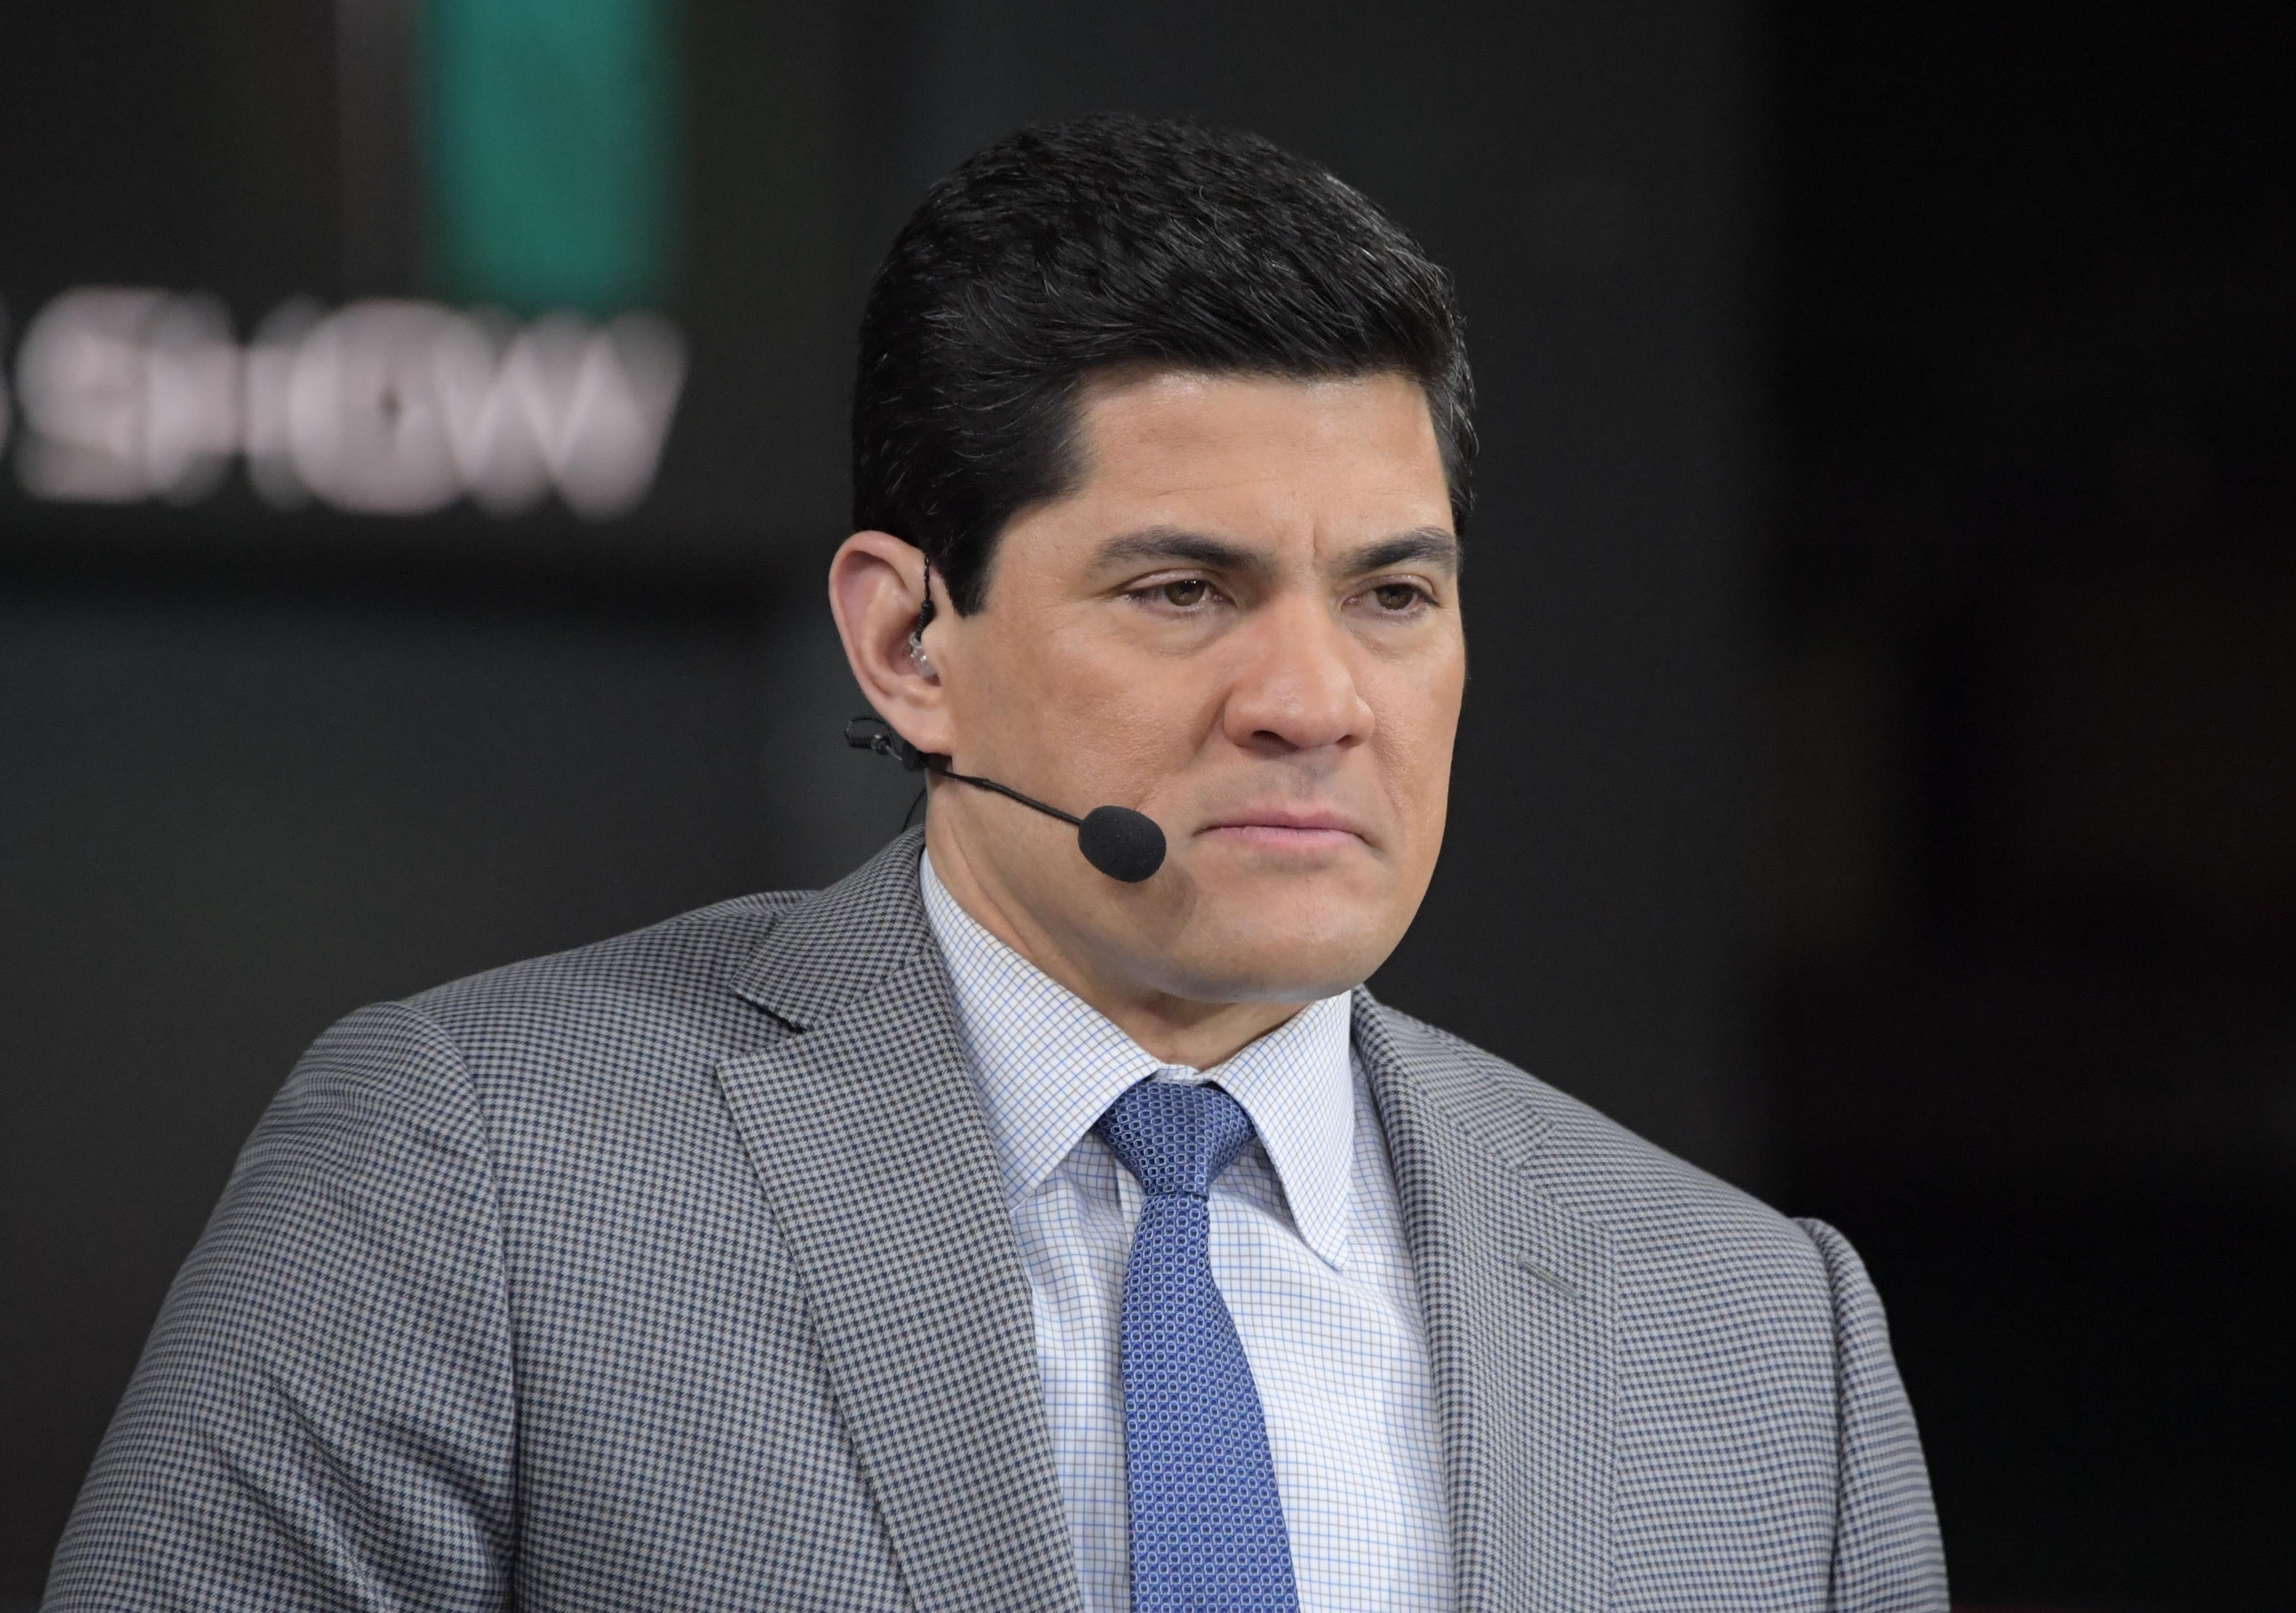 ESPN analyst, former Patriots star Tedy Bruschi doing 'much better' after 2nd stroke